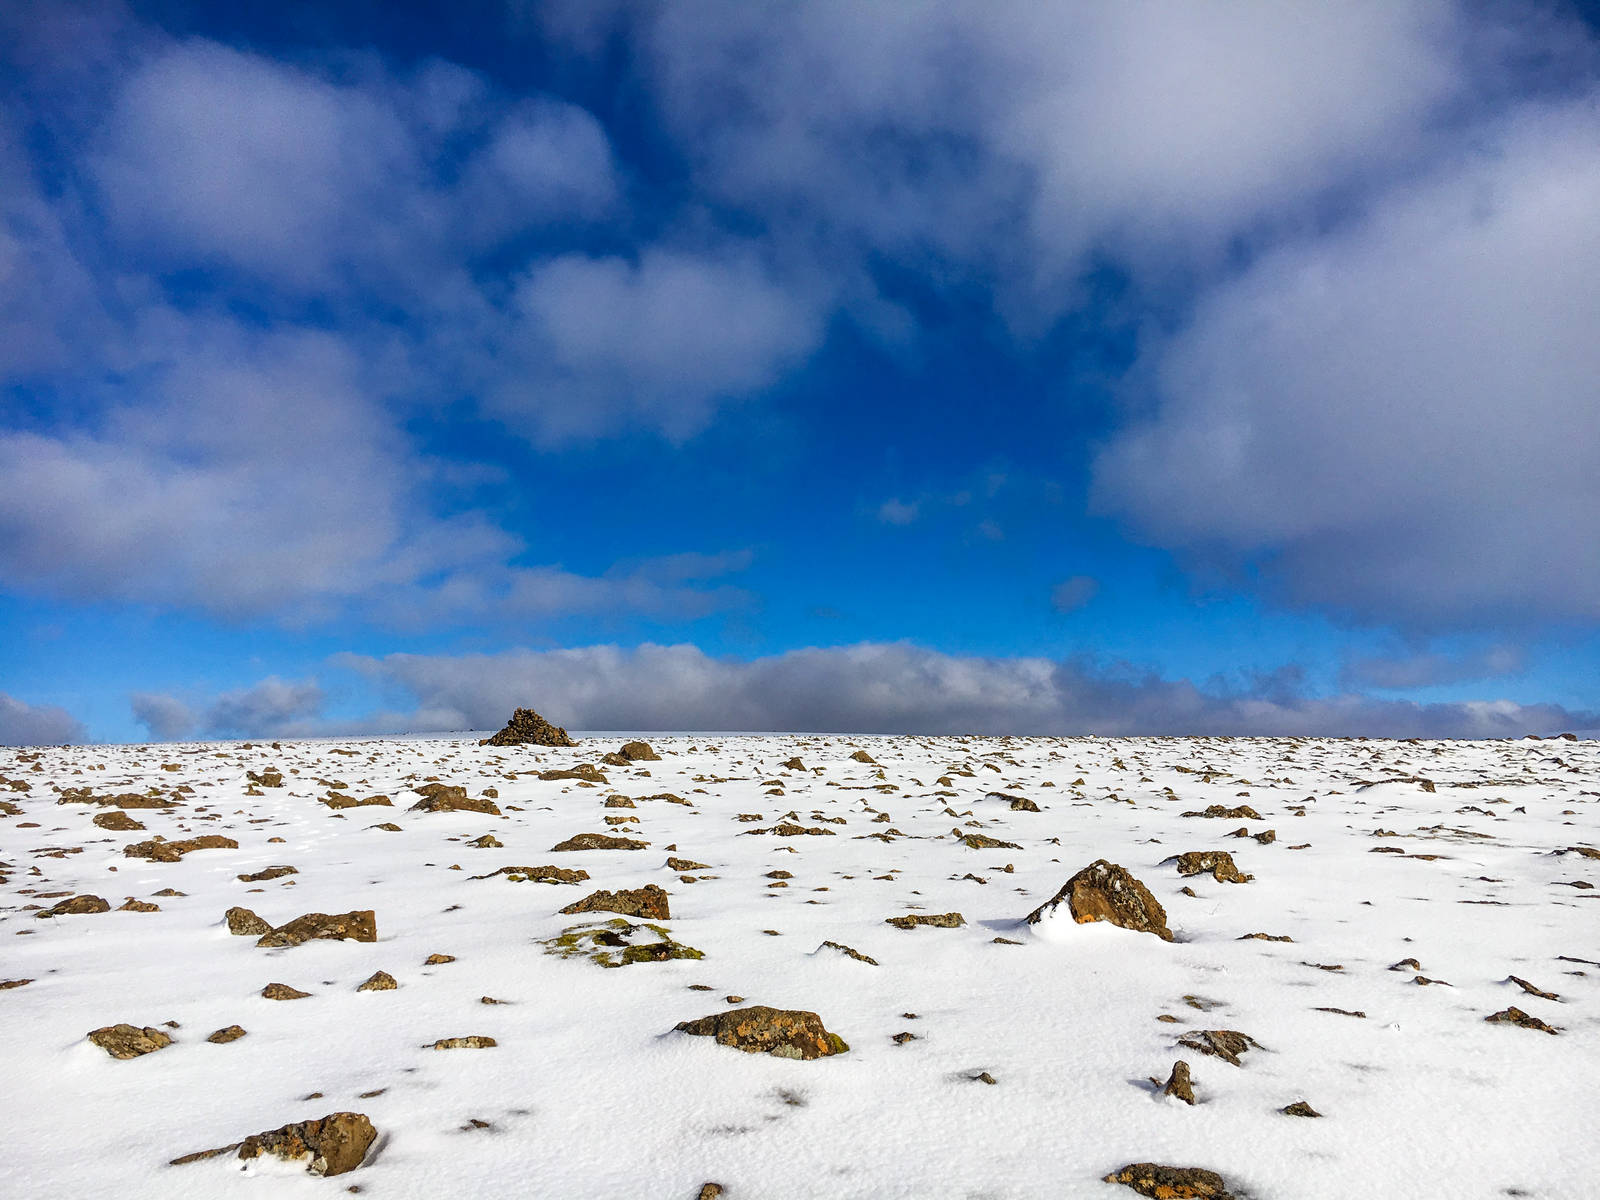 Snowy plateau at the top of Esja